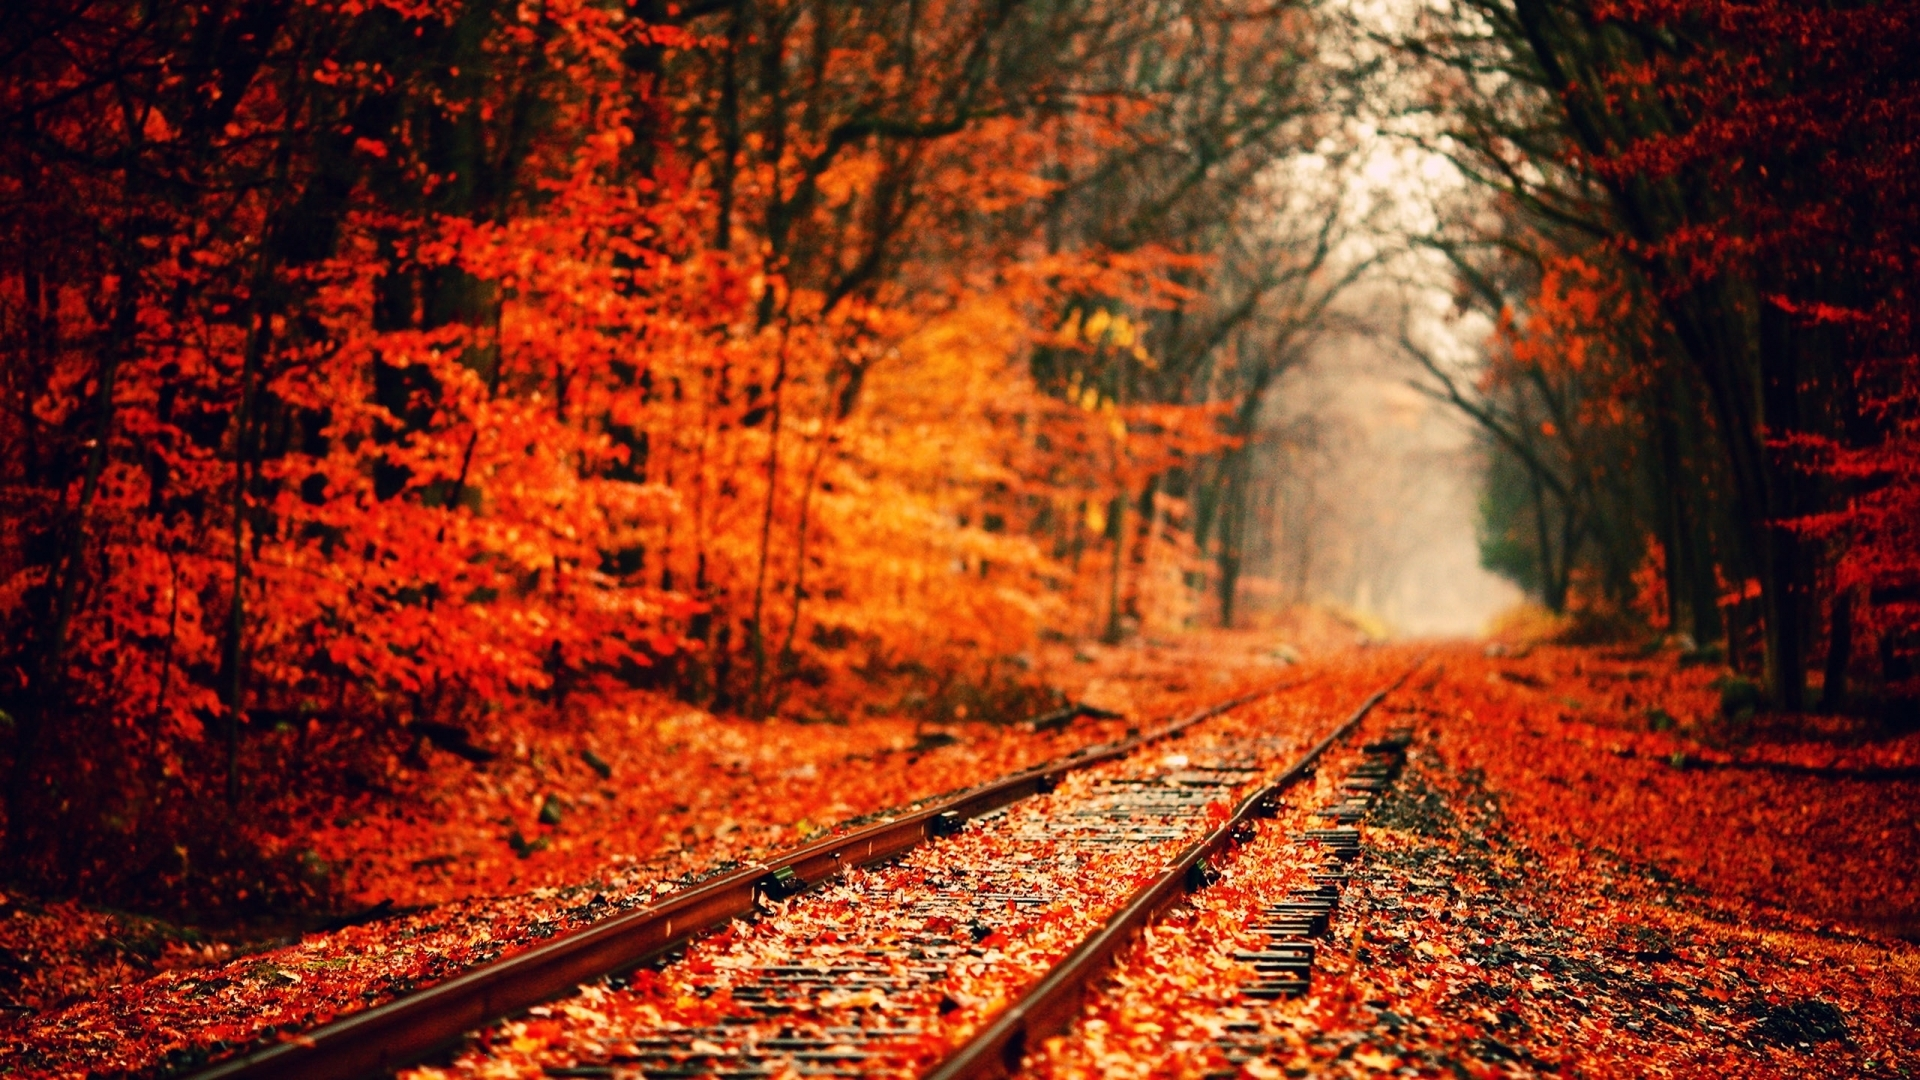 10 Best Fall Desktop Backgrounds Hd FULL HD 1080p For PC Desktop